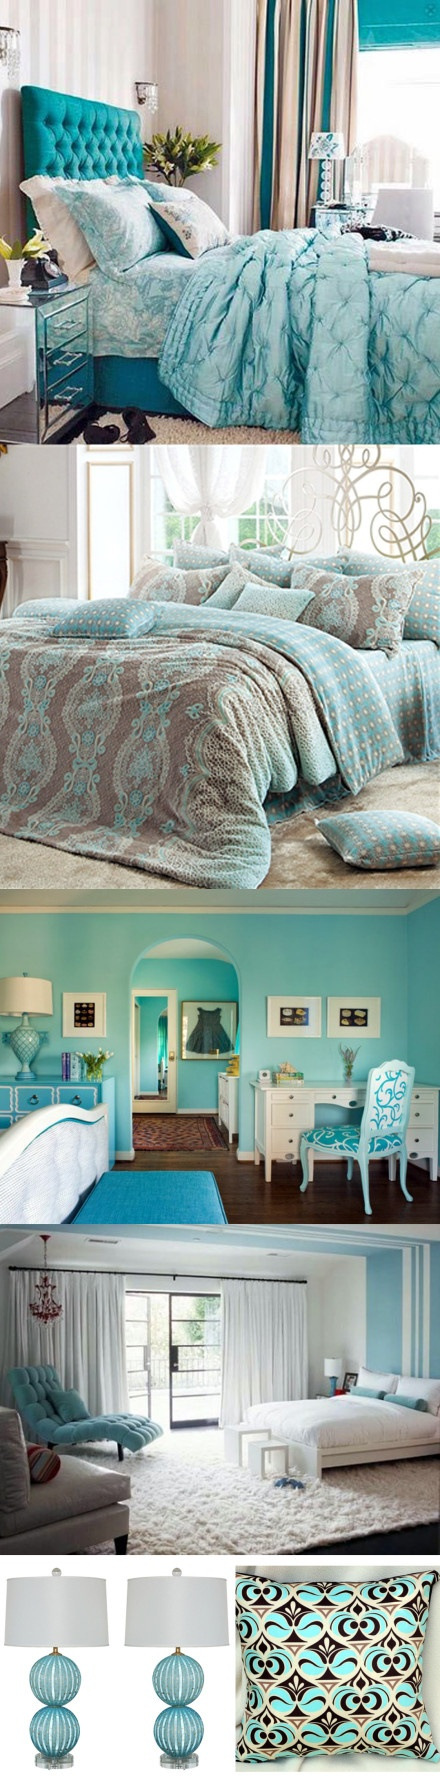 House decortion of a Tiffany Theme~